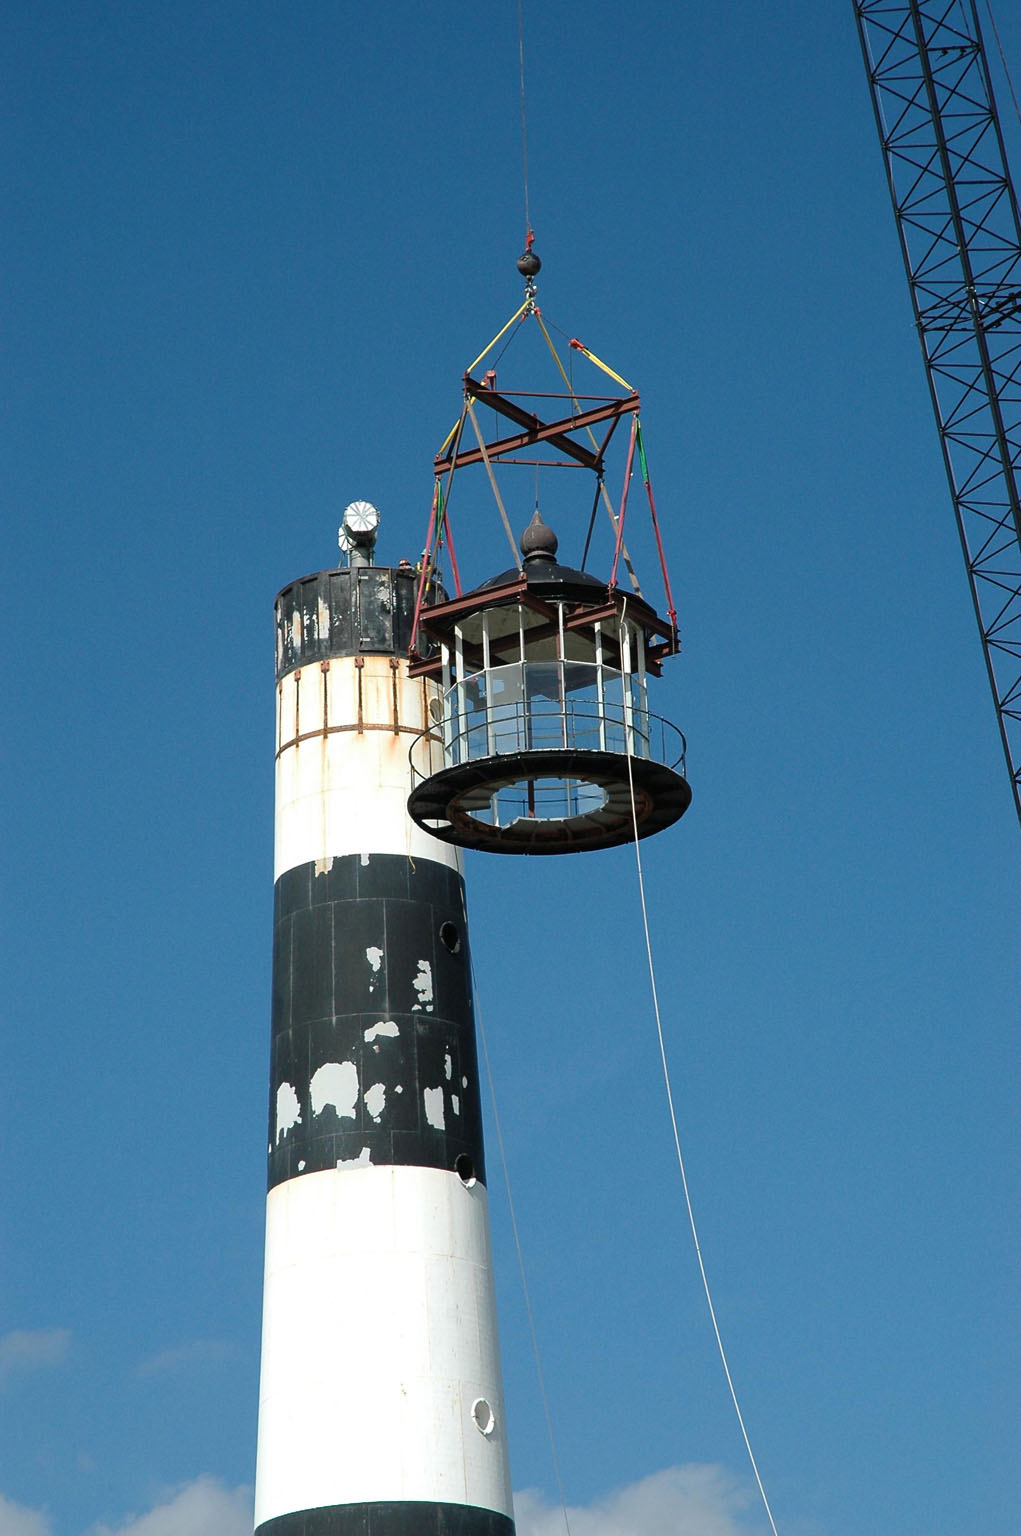 KENNEDY SPACE CENTER, FLA. - At Cape Canaveral Air Force Station, a crane lowers the detached lamp room alongside the Cape Canaveral Lighthouse. Leaks in the roof allowed moisture to seep in. The lamp room is being removed for repairs and refurbishment. In addition, the original brass roof will be restored and put back in place. The Cape Canaveral Lighthouse is the only operational lighthouse owned by the Air Force. It was first erected in 1868 near the edge of the Atlantic Ocean. Photo credit: NASA/Jack Pfaller